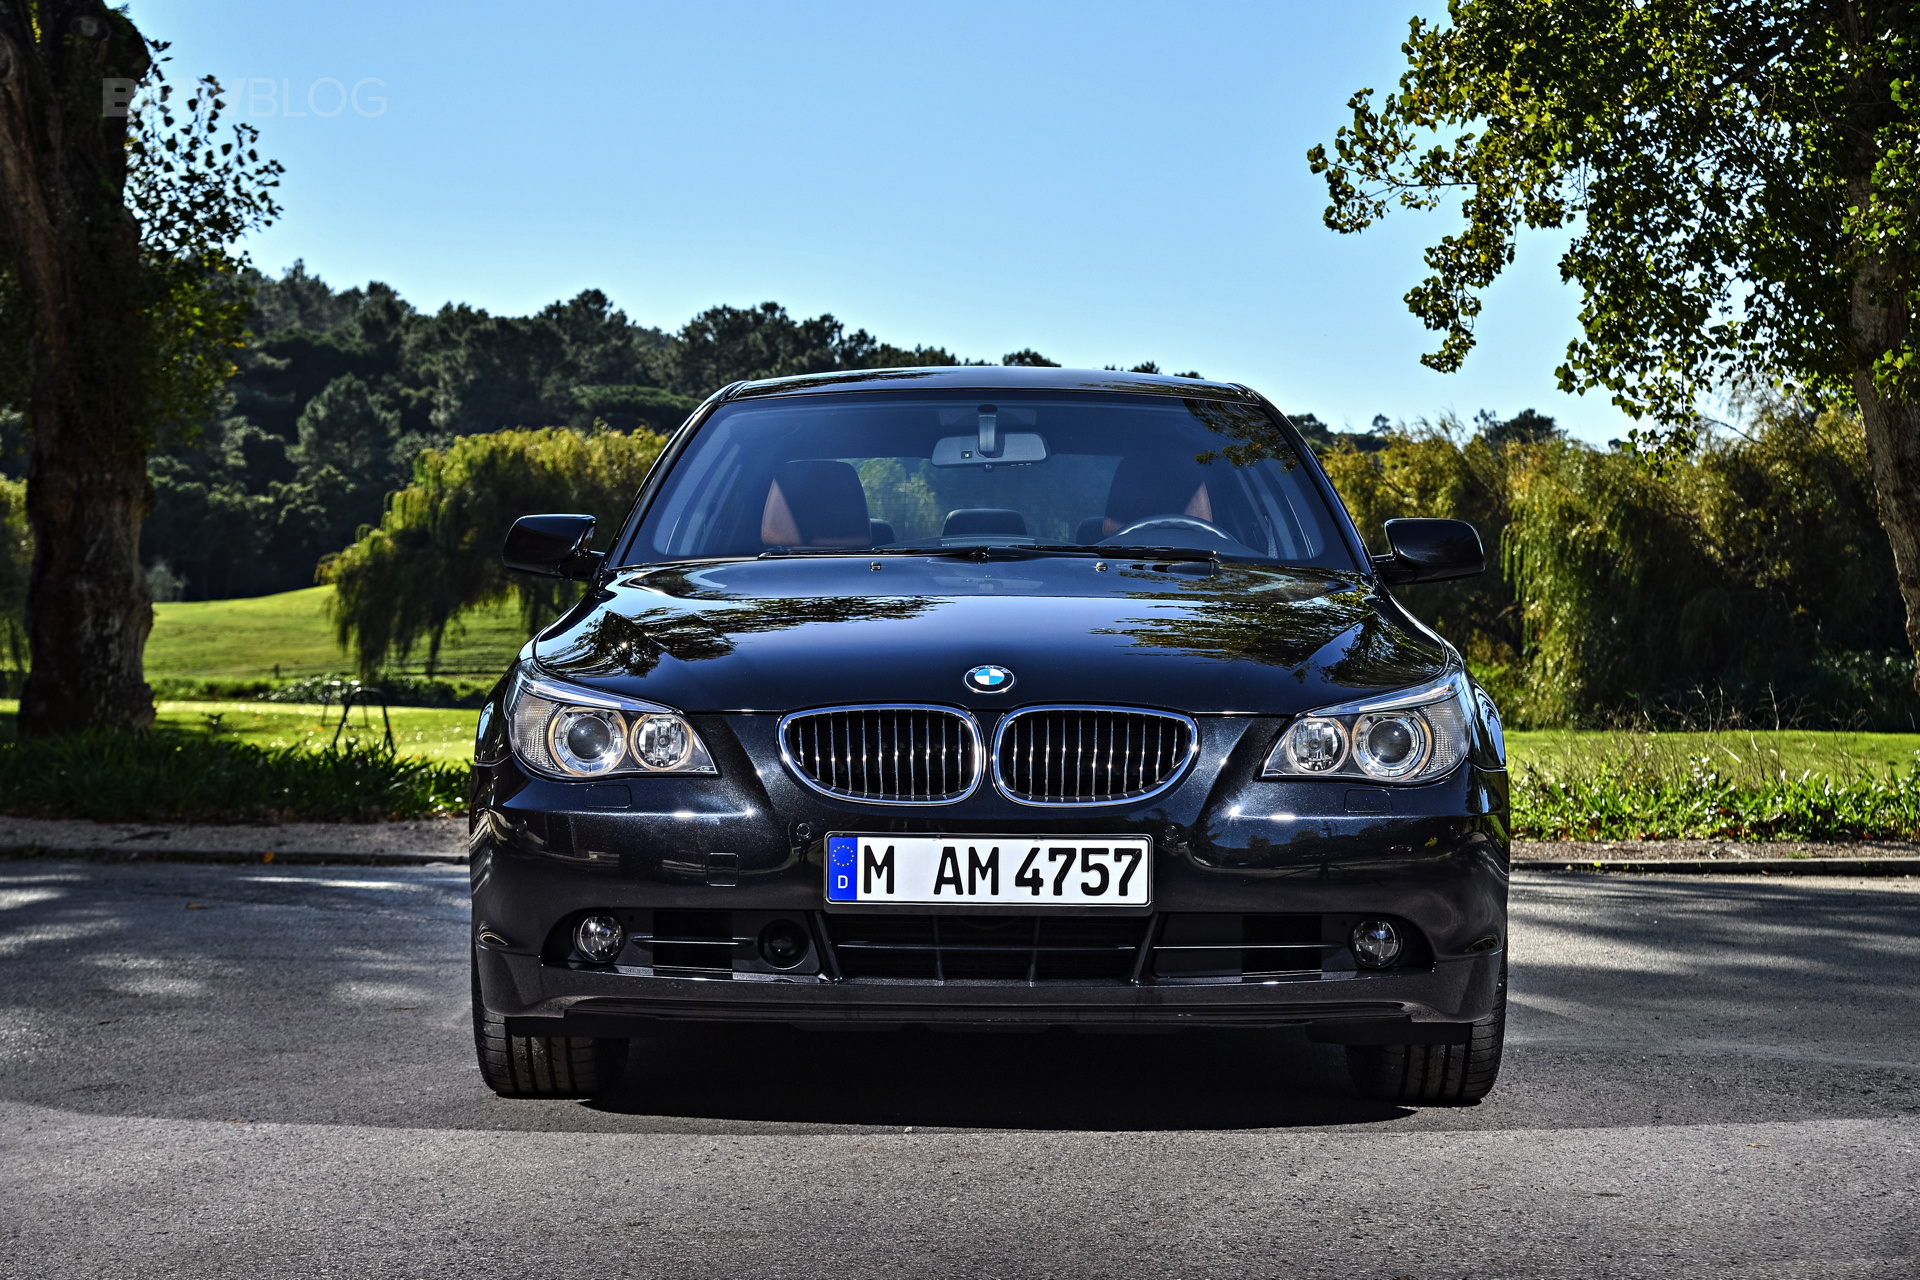 BMW E60 5 Series images 03